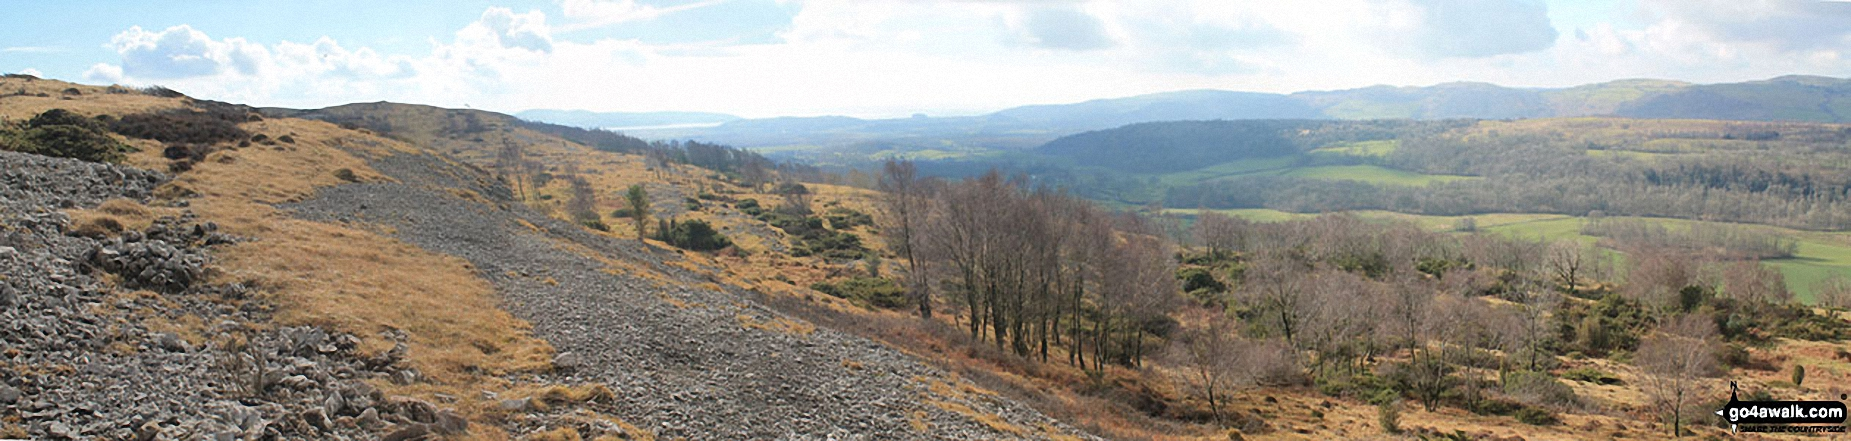 Arnside Knott, Humphrey Head, Dixon Heights (Newton Fell) and Saskills (Newton Fell) from the Whitbarrow Scar ridge